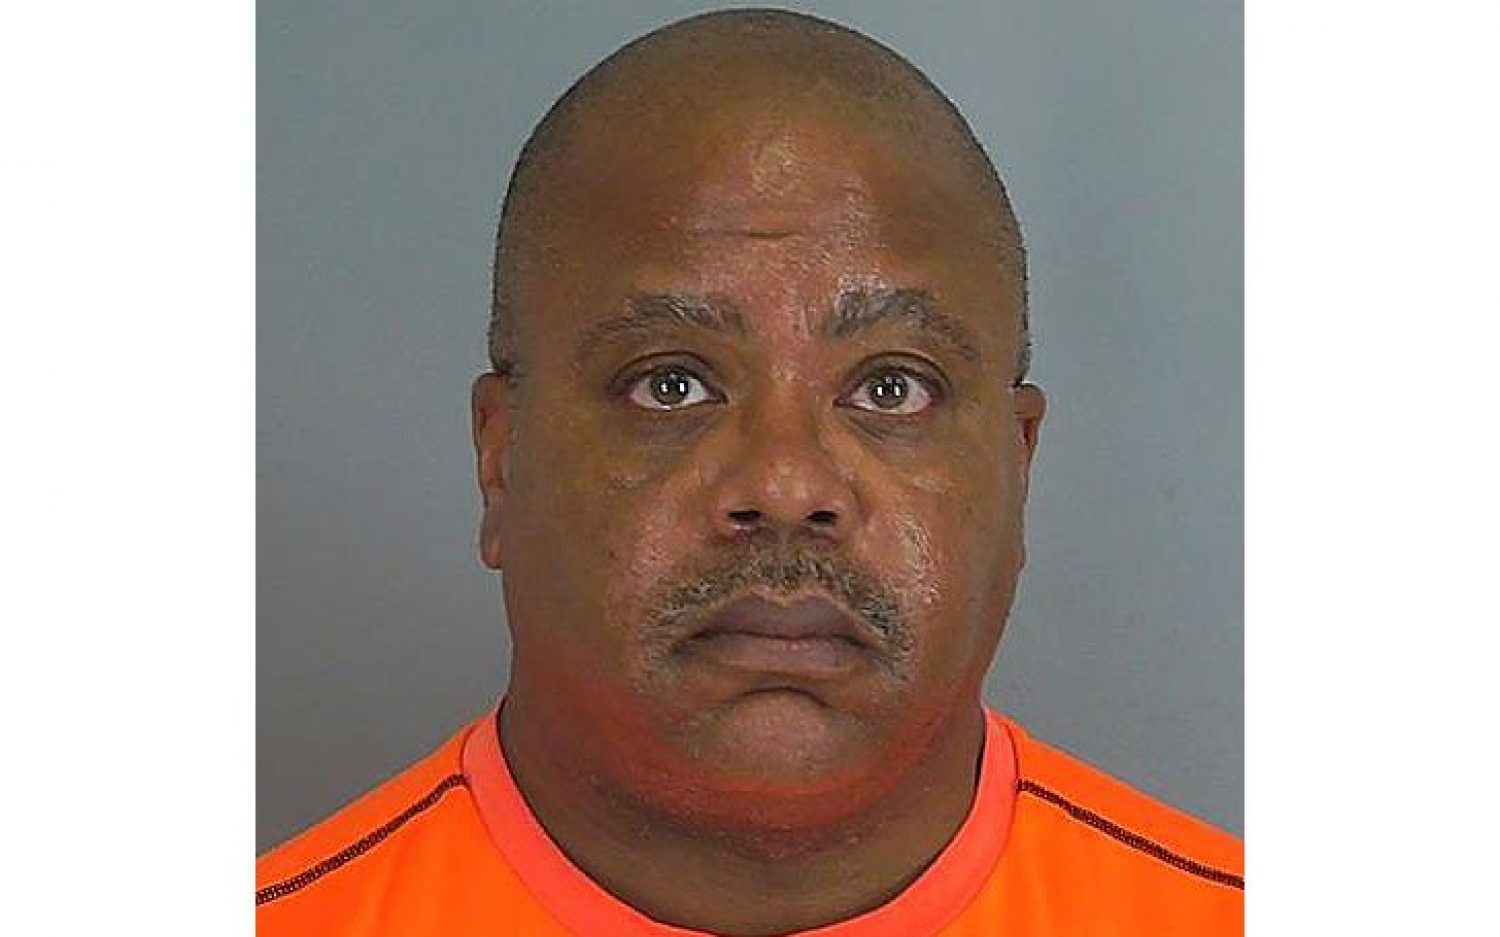 Notorious late-term abortionist arrested in South Carolina